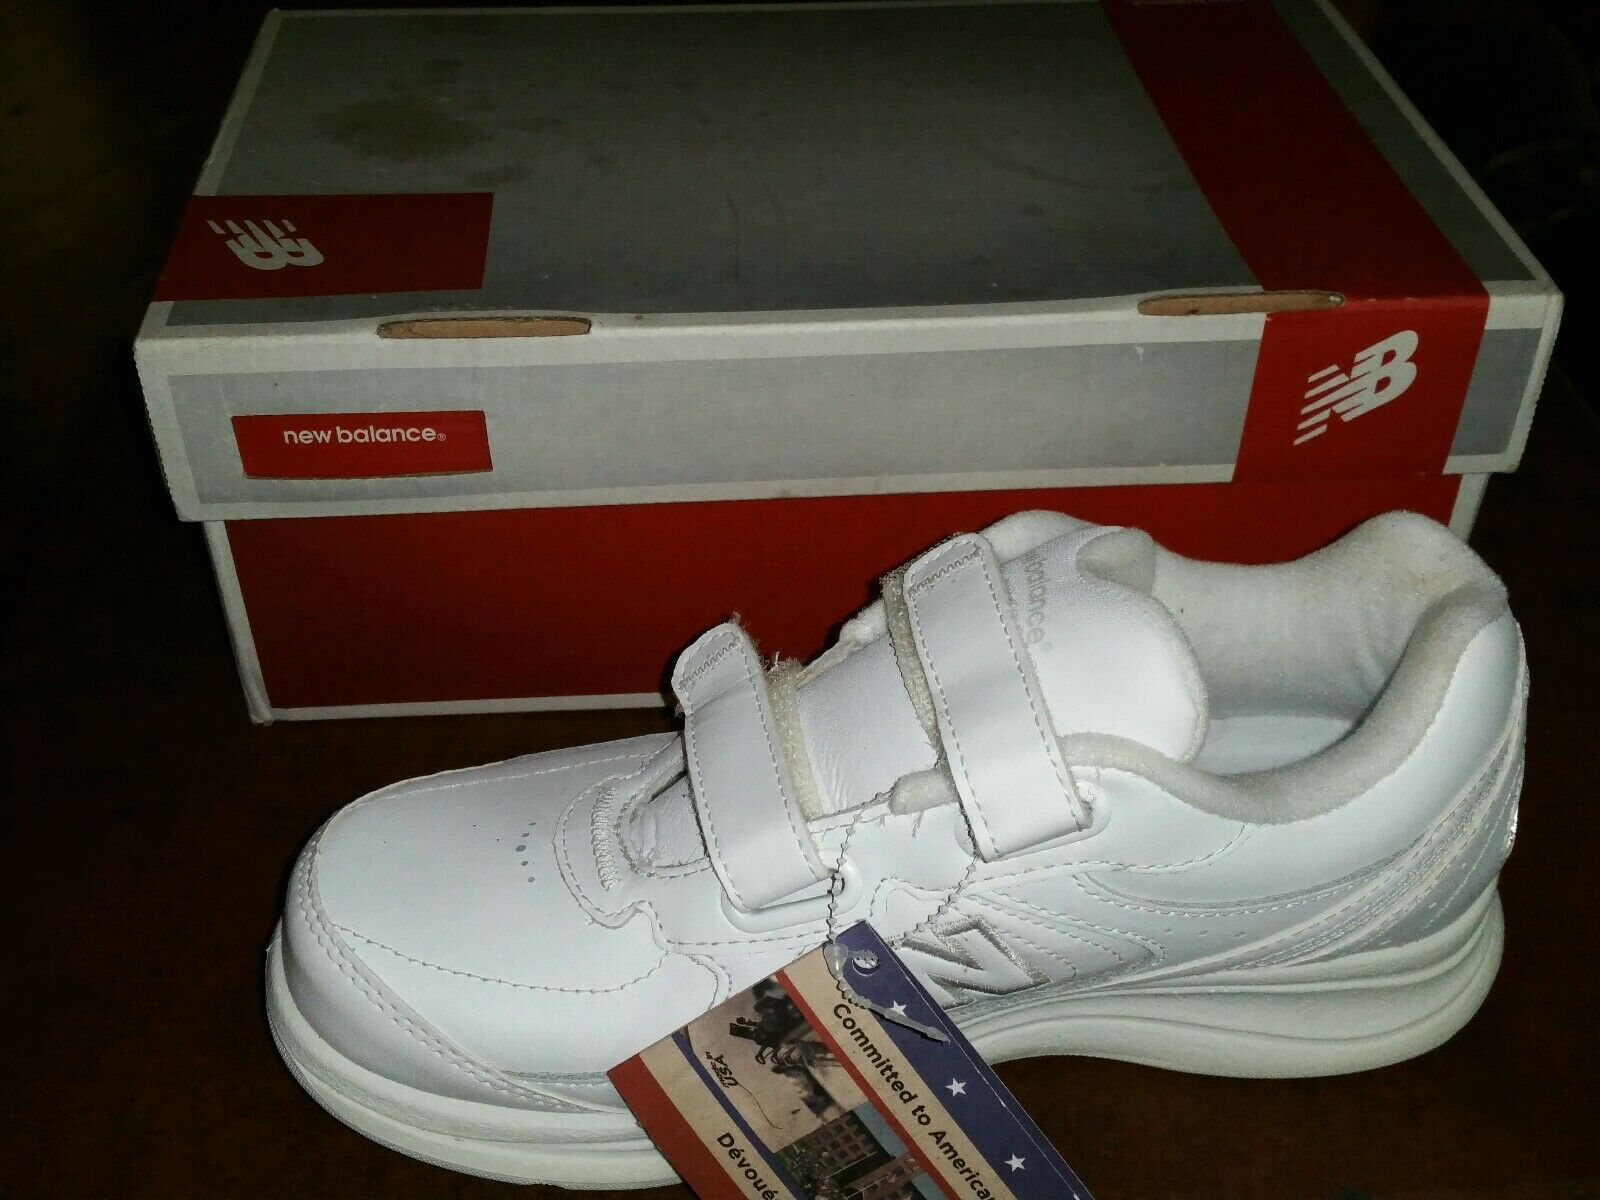 New Balance Walking shoes Size 7 New in Box